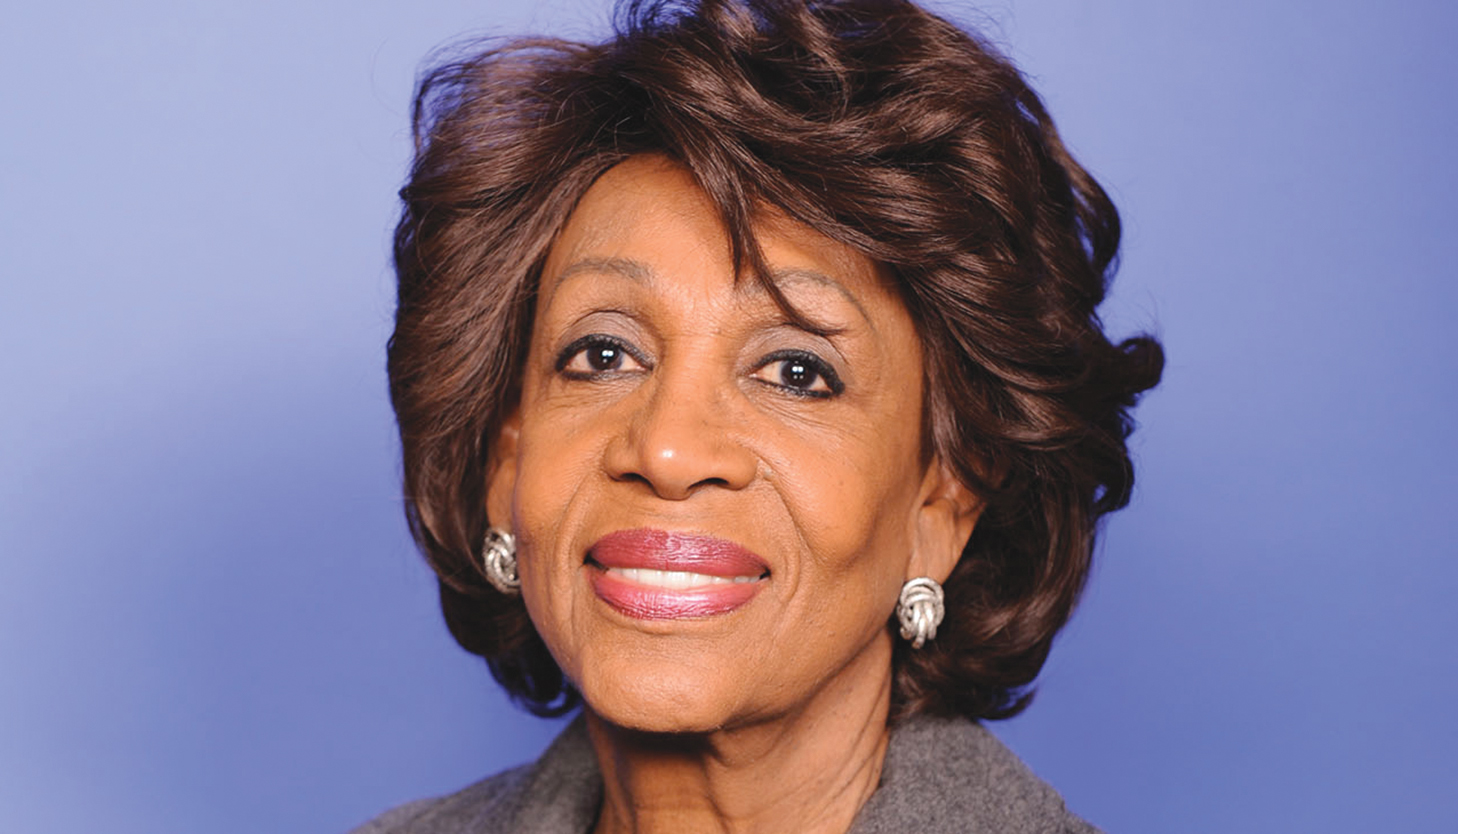 Upon returning to the United States, Congresswoman Waters discussed Haiti's political crisis with Congresswoman Lee, members of the Congressional Black Caucus (CBC), and other concerned Members of Congress, and they agreed to work together to pursue justice for the people of Haiti. (Courtesy photo)